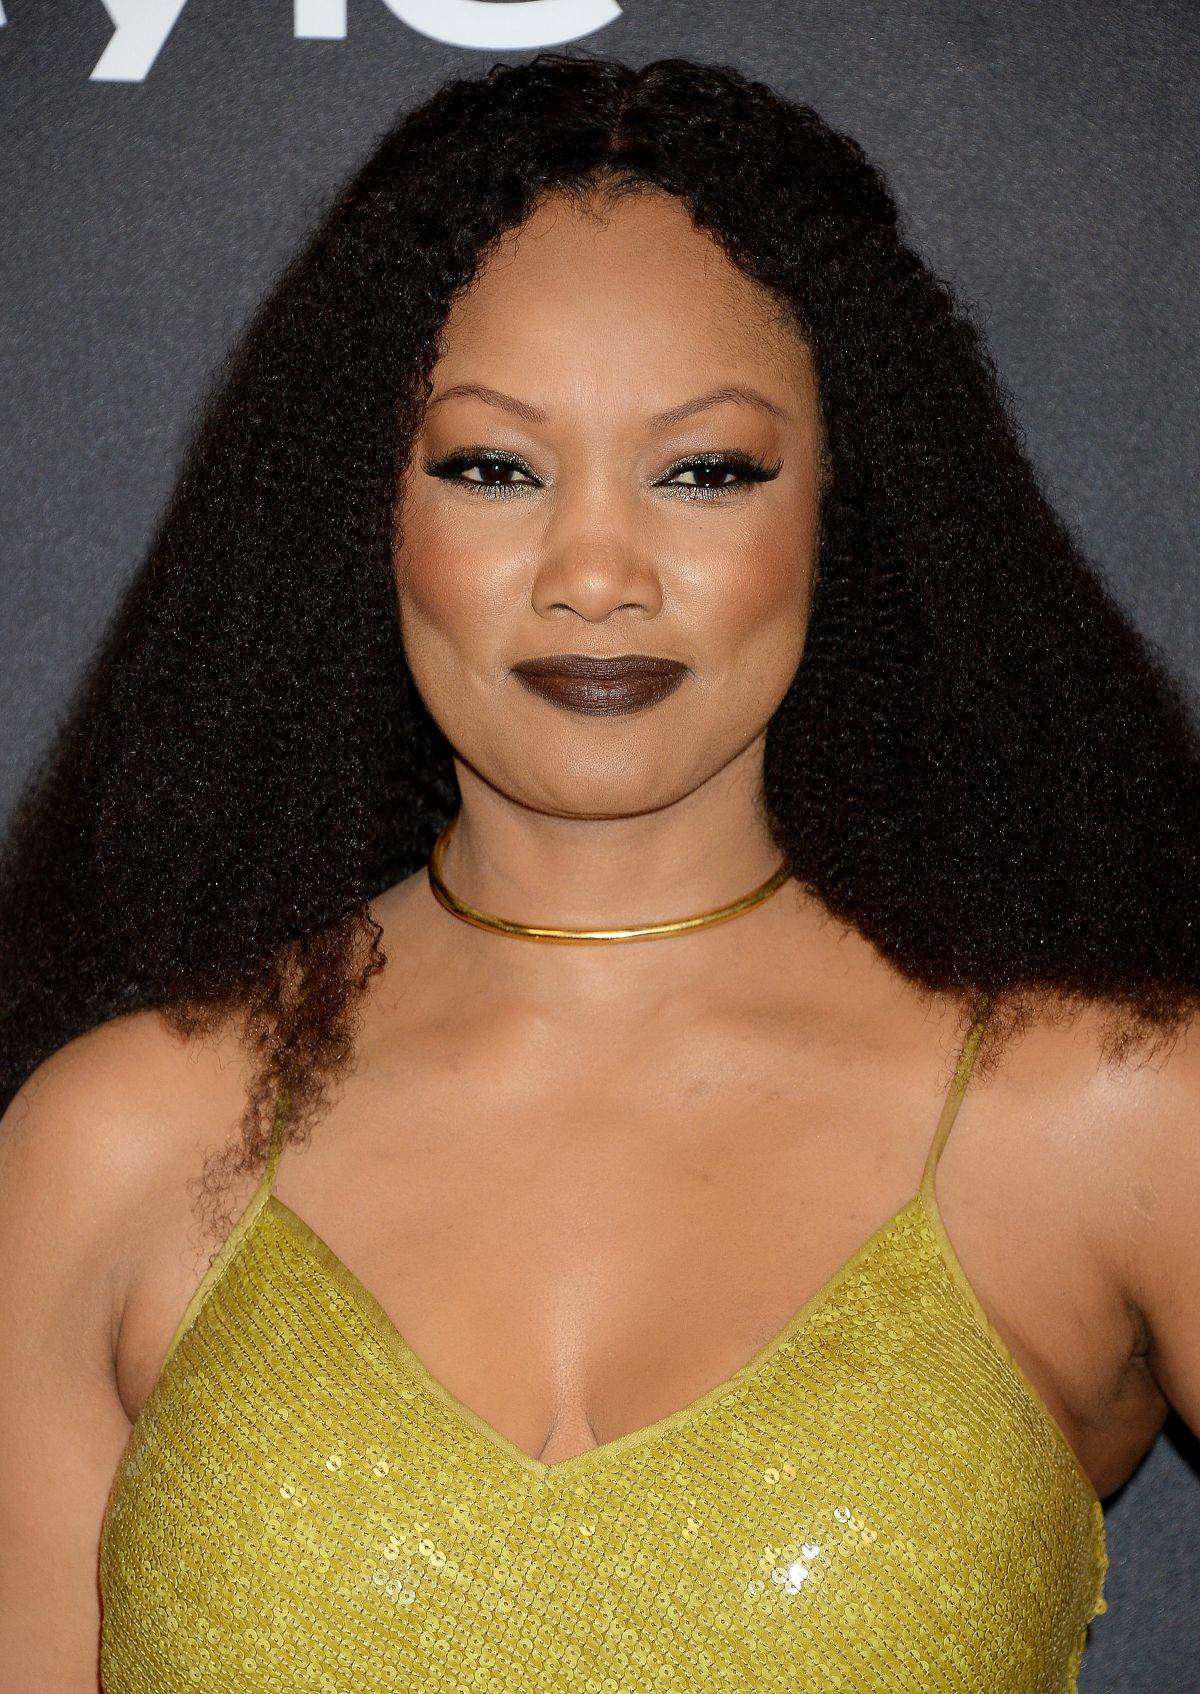 GARCELLE BEAUVAIS at Warner Bros. Pictures & Instyle's 18th Annual Golden Globes Party in Beverly Hills 01/08/2017